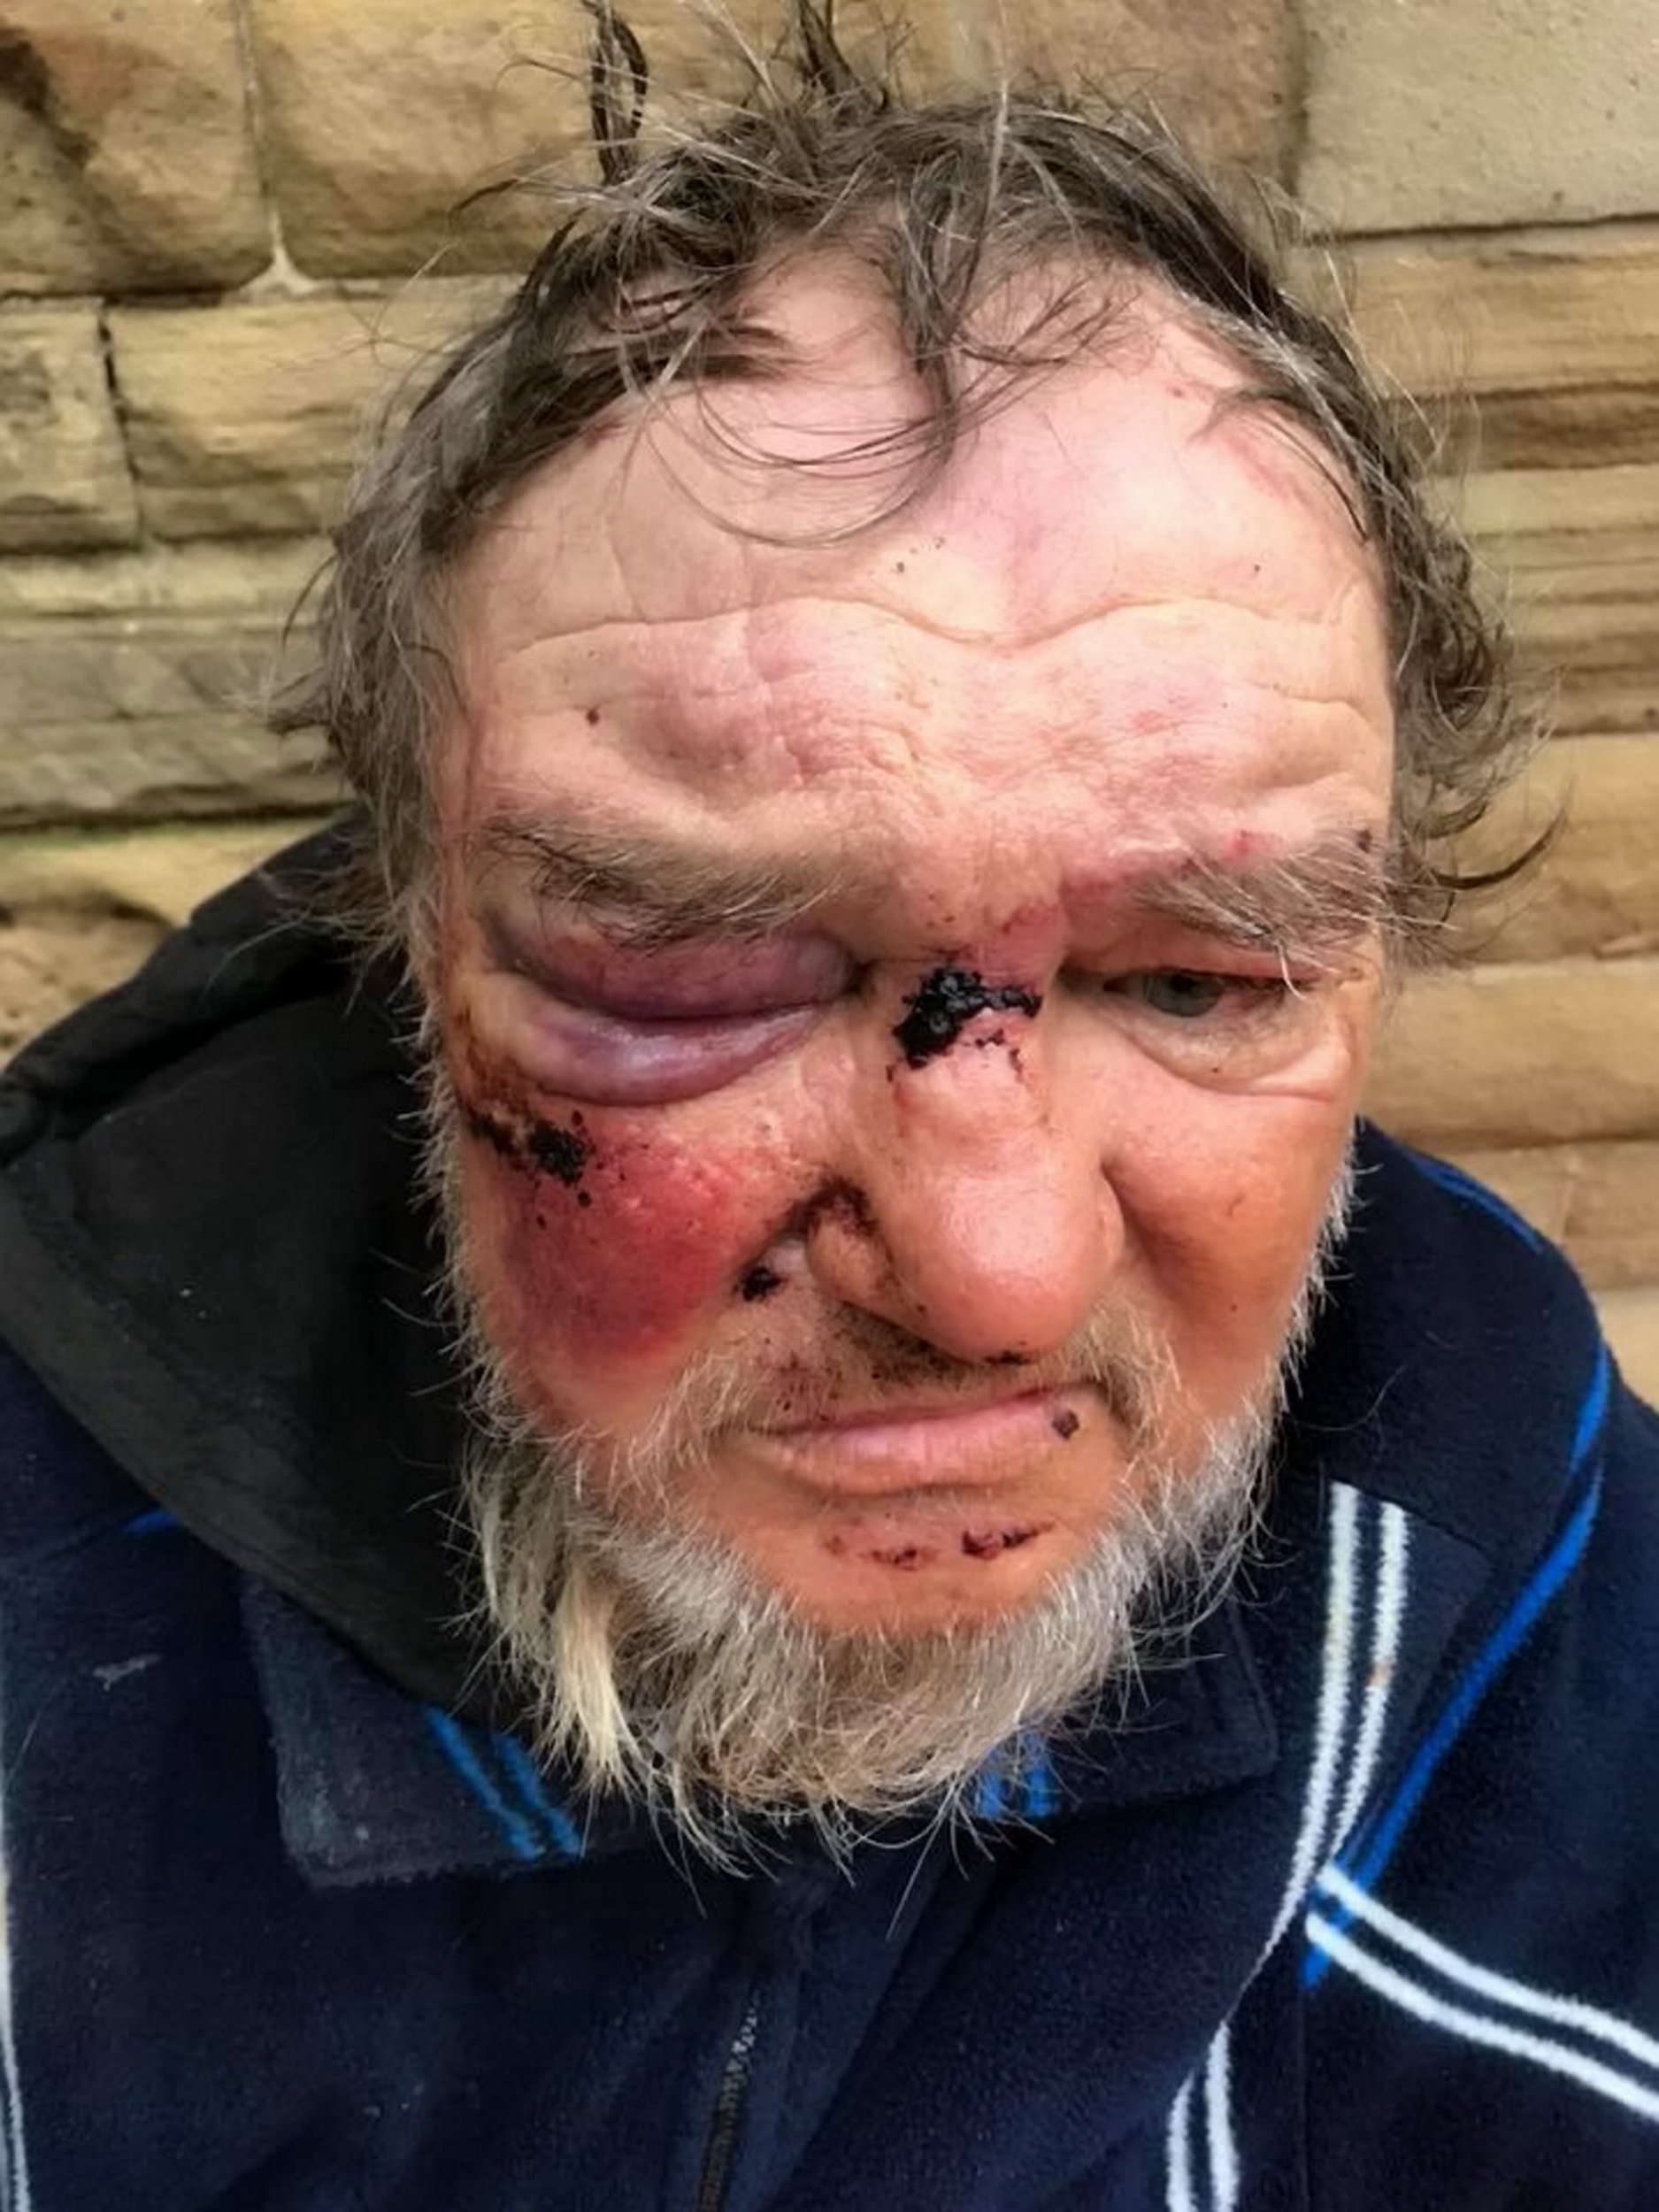 """Homeless man Igor Gieci, 55, after he was subjected to a 20 minute attack by three teenagers on the streets of Blackpool. Concerned citizens have flocked together to raise money for him and find him lodgings. See story SWOCigor.This is the heartwarming transformation of a homeless man """"beaten to a pulp by youths"""" after appalled locals rallied round to help him. Igor Gieci, 55, was jumped by three teenagers who kicked and punched him in his tent, ripping up his home and smacked him with his own crutches in a 20-minute attack. Outraged locals heard about the brutal assault and launched an online fundraising page to get him off the street while he recovers. And in just two days kind-hearted strangers have taken him for a haircut, bought him some prescription glasses and taken him to the pharmacy to get his prescriptions."""